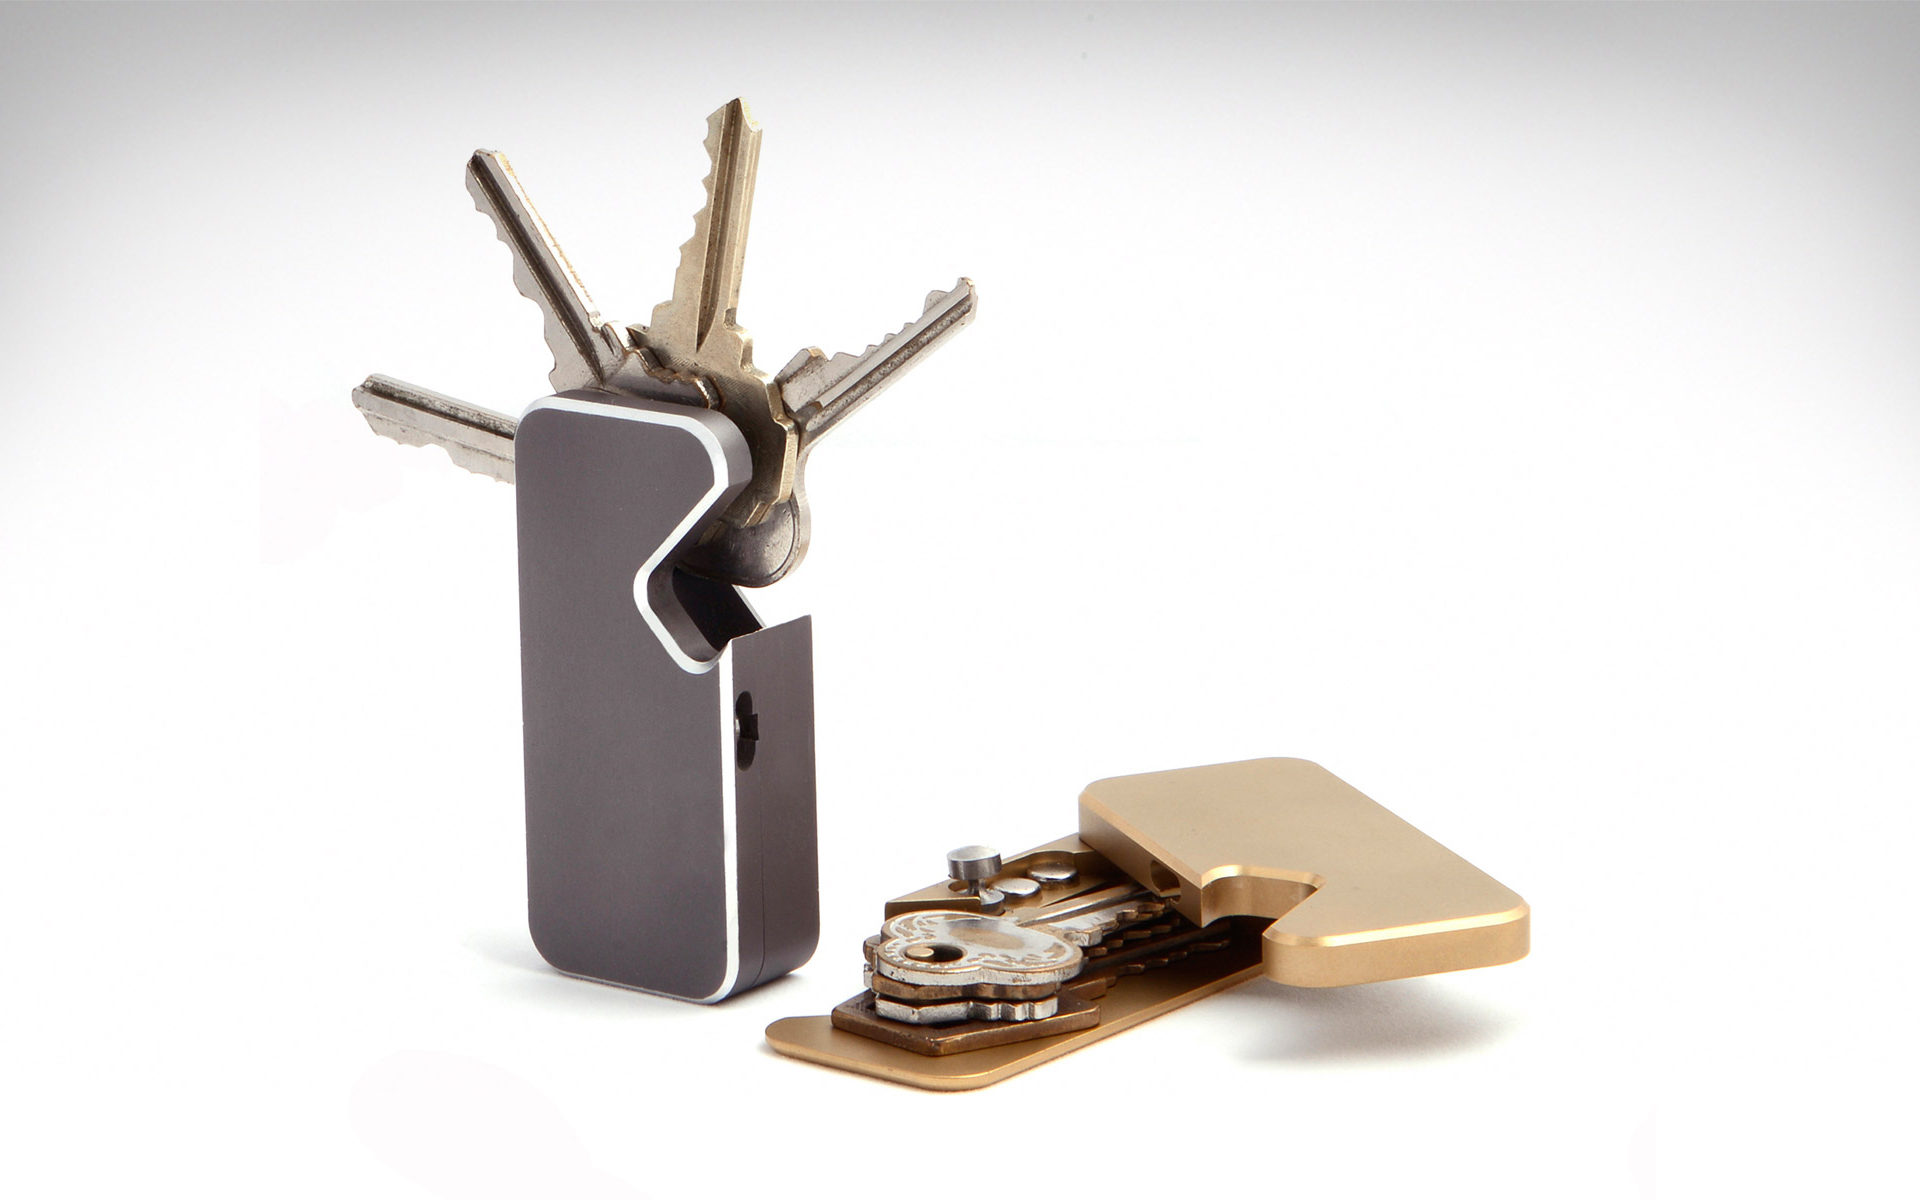 Swivel Keywallet